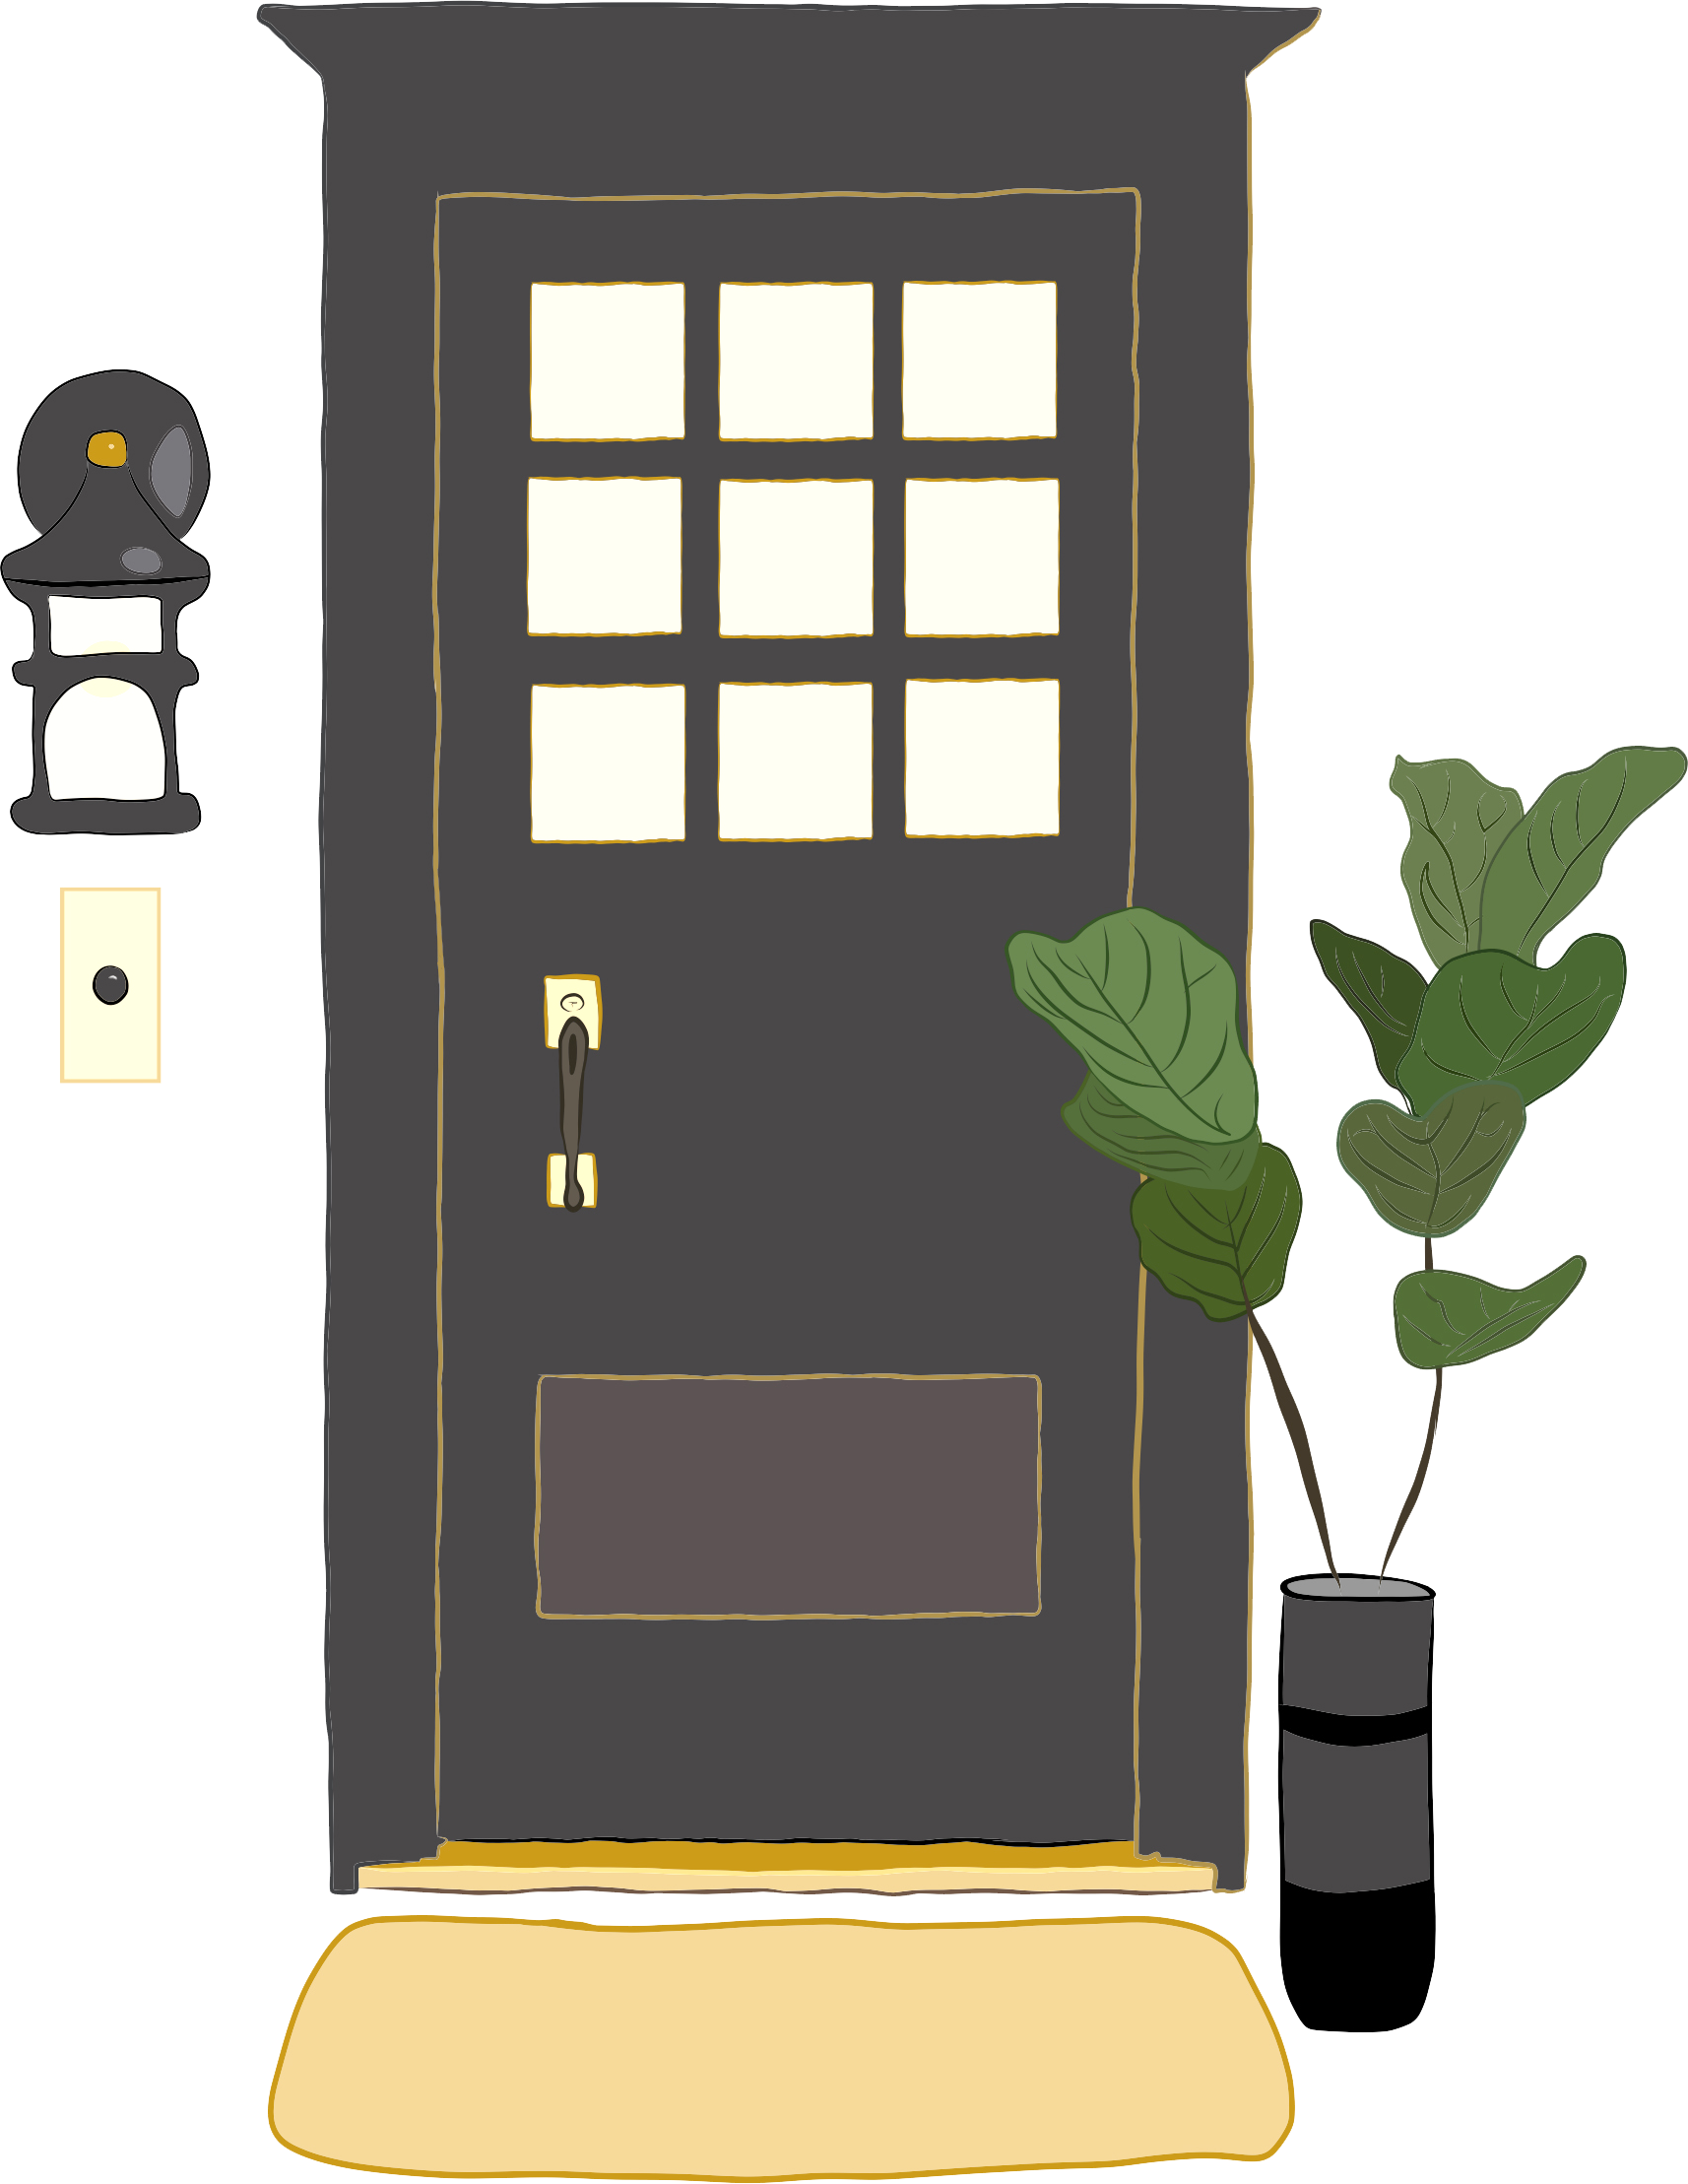 Illustration of black door with gold accents, including doorbell, porch light, floor mat and plant.